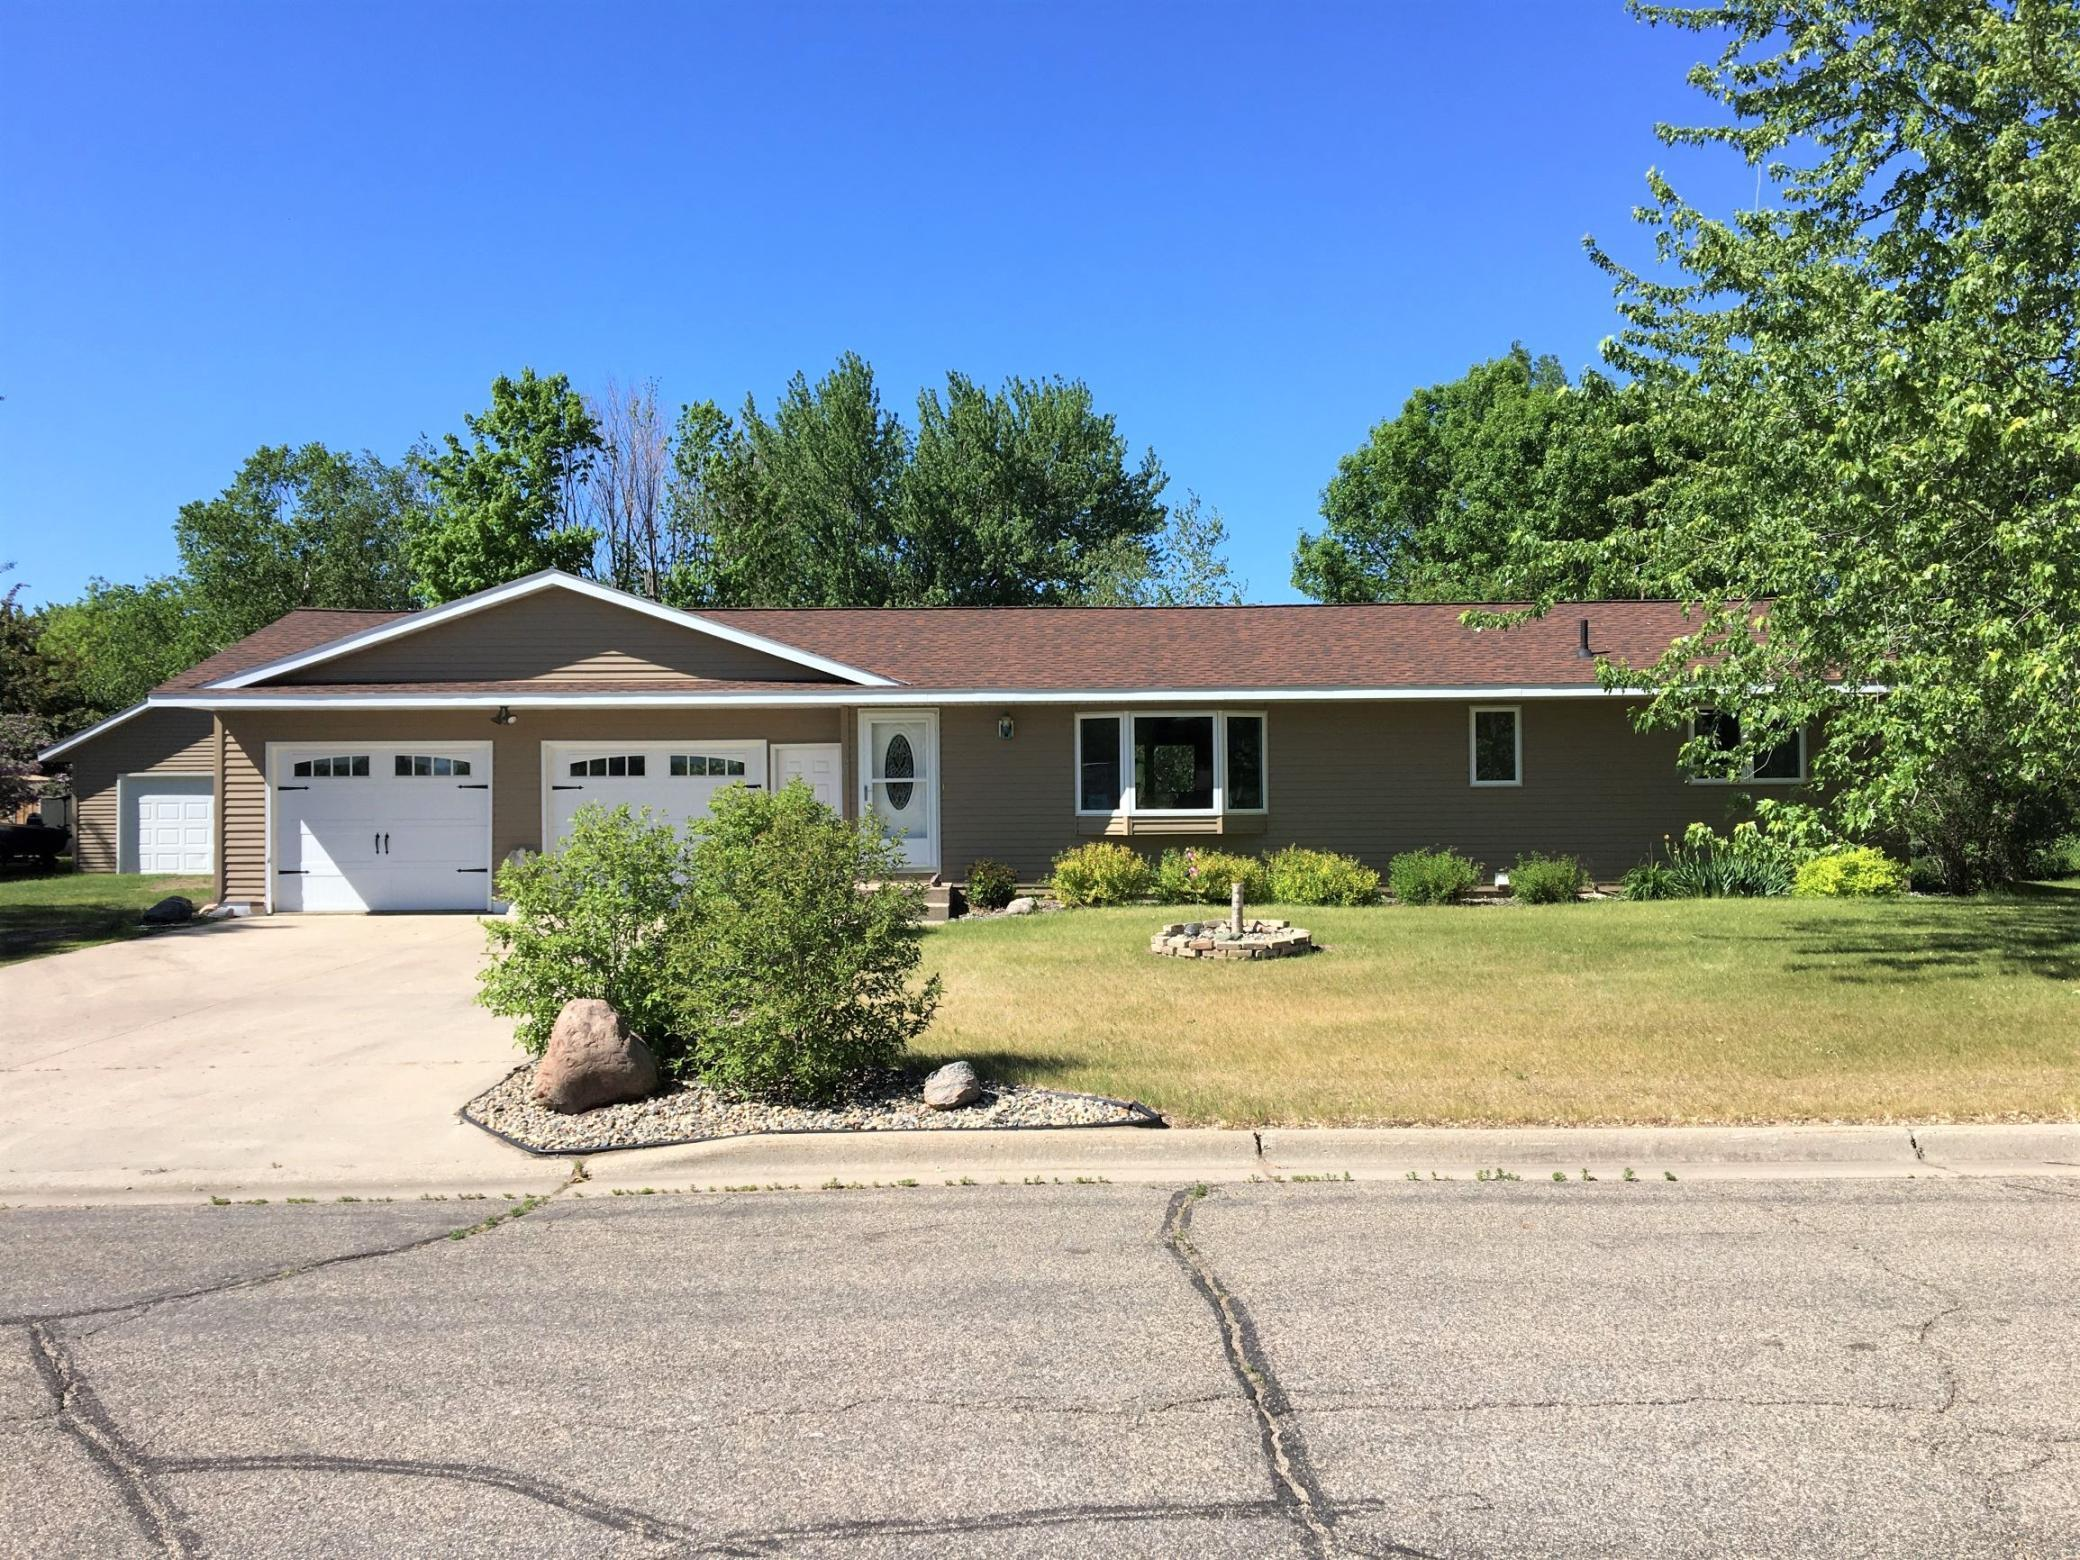 Must see this updated 4 bed,1.75 bath rambler with extra 26'x36' detached garage! Home features newer windows, shingles, siding & flooring. You'll love the fenced in back yard and extra storage shed! Located across the street from Hickman Park & Ashley Creek. (Buyers agent to verify all measurements/info.)